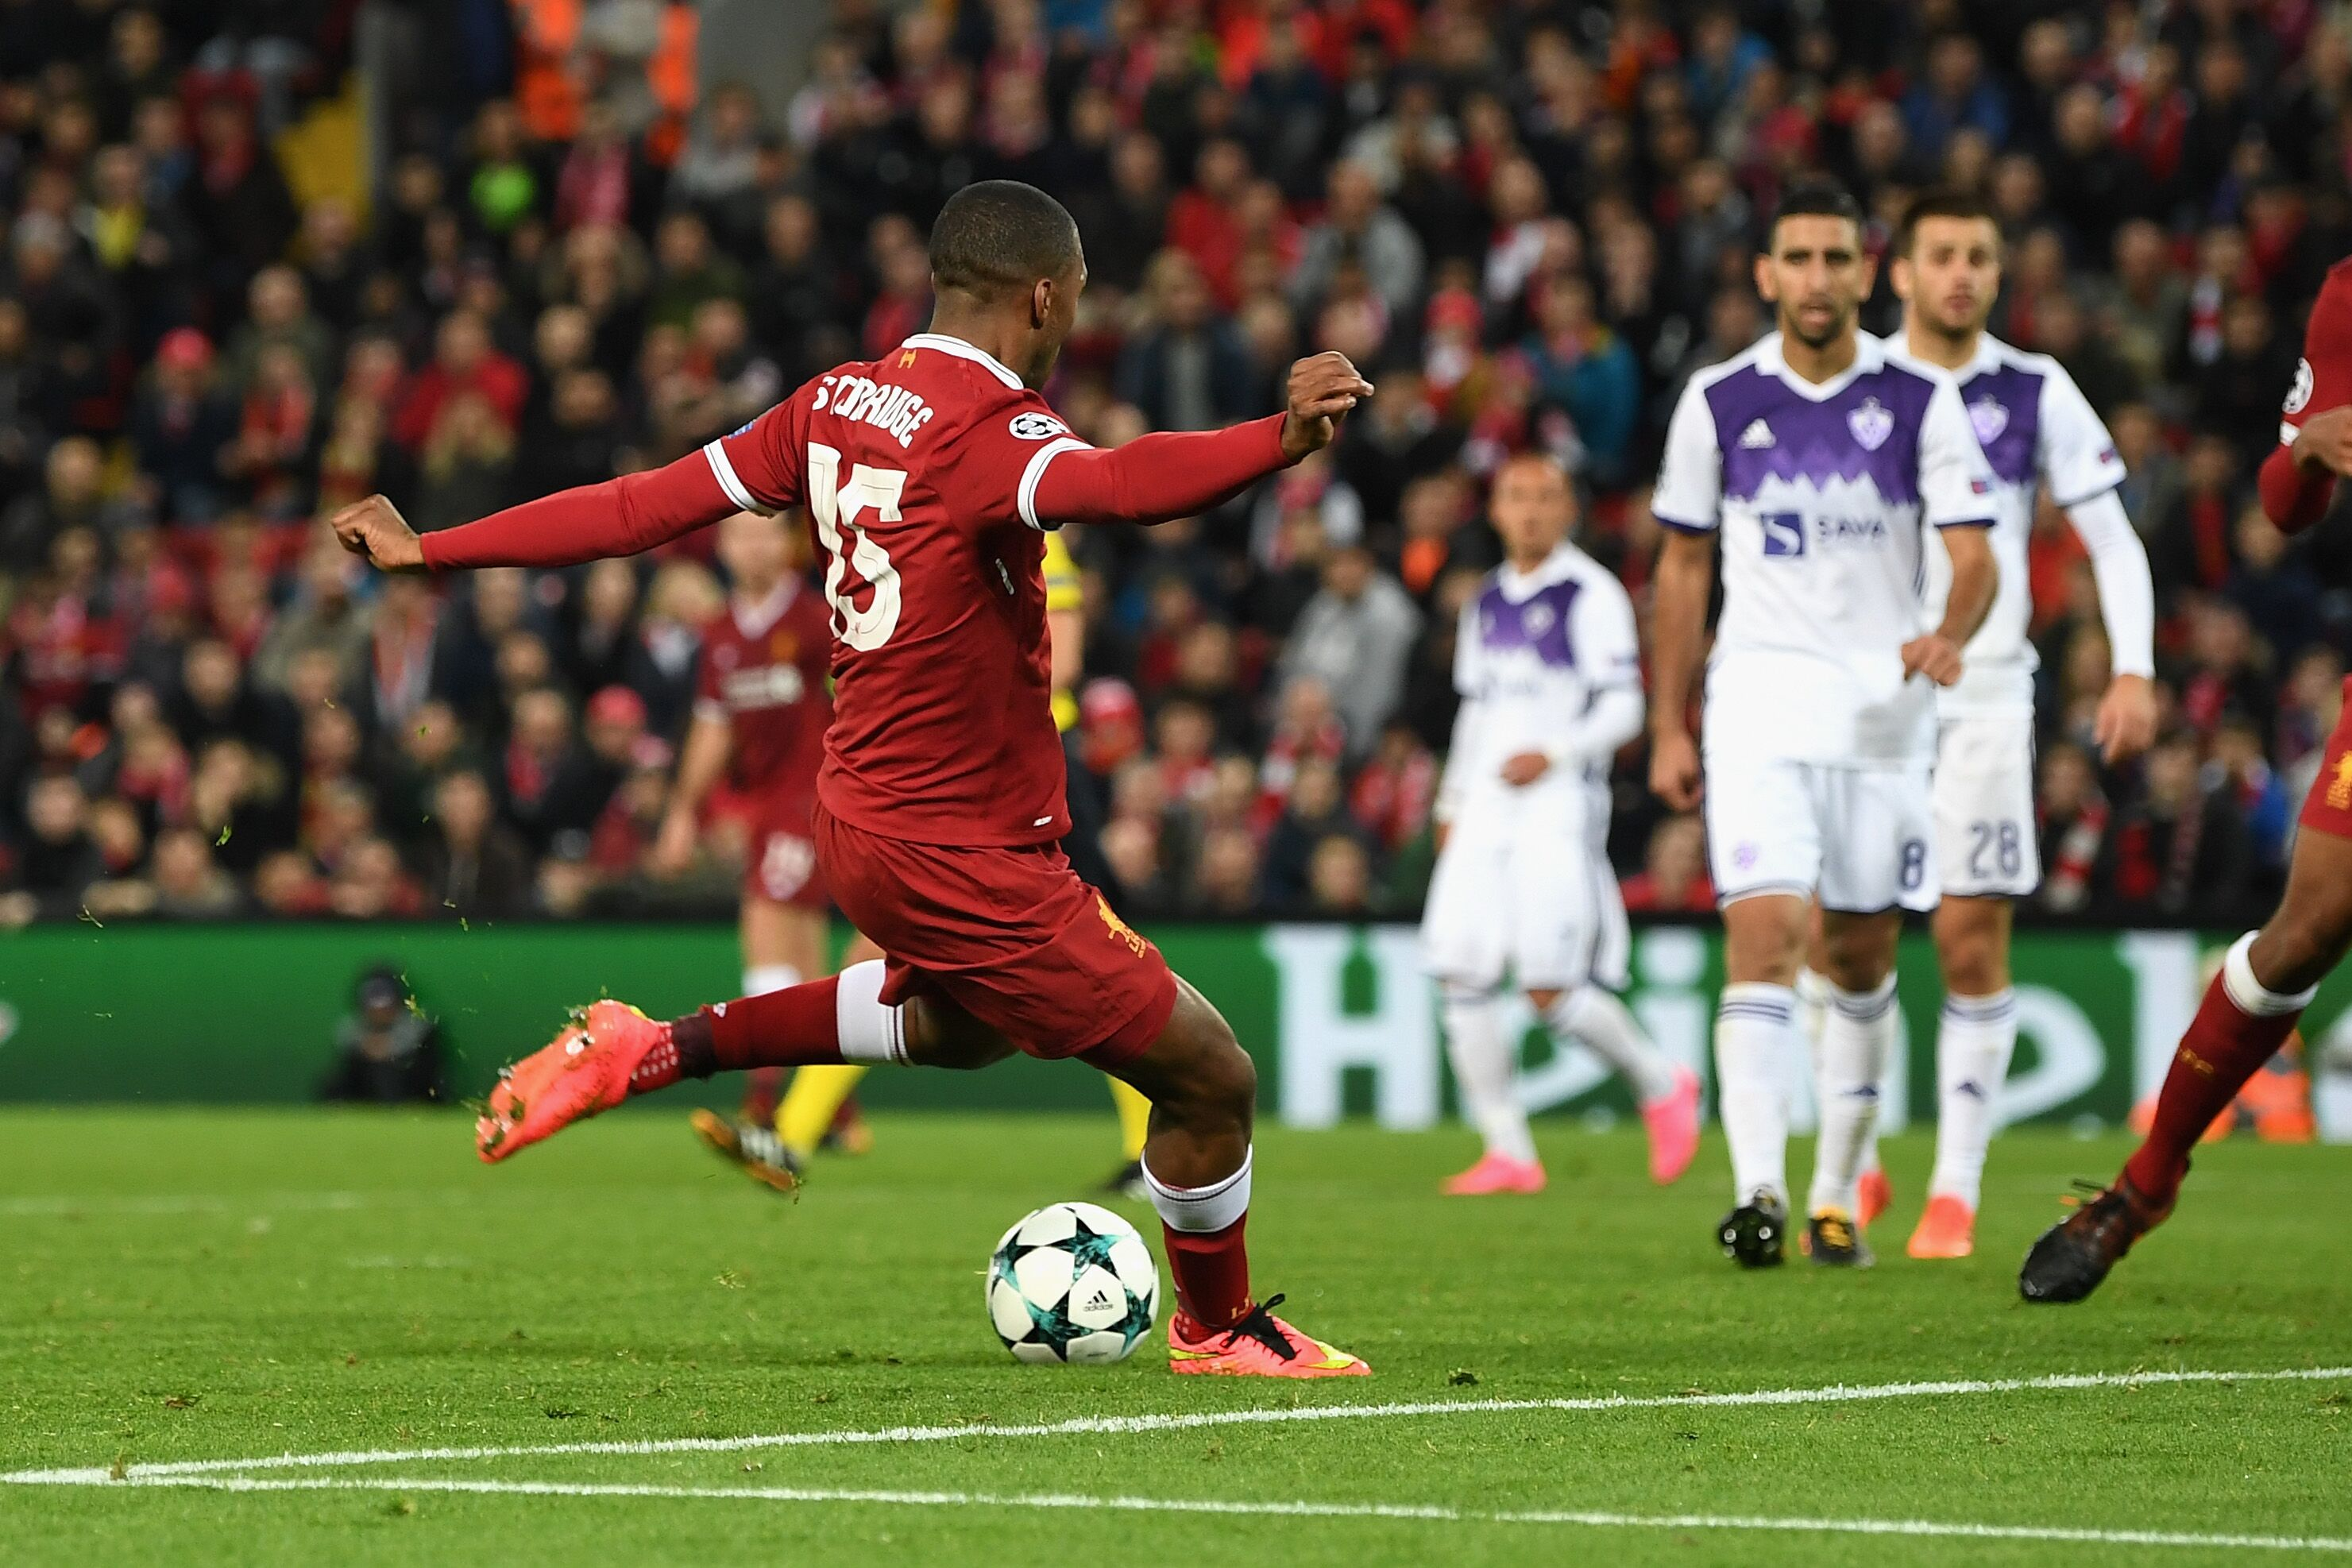 Liverpool: Sturridge needs to make space for a player suited to Klopp's Reds